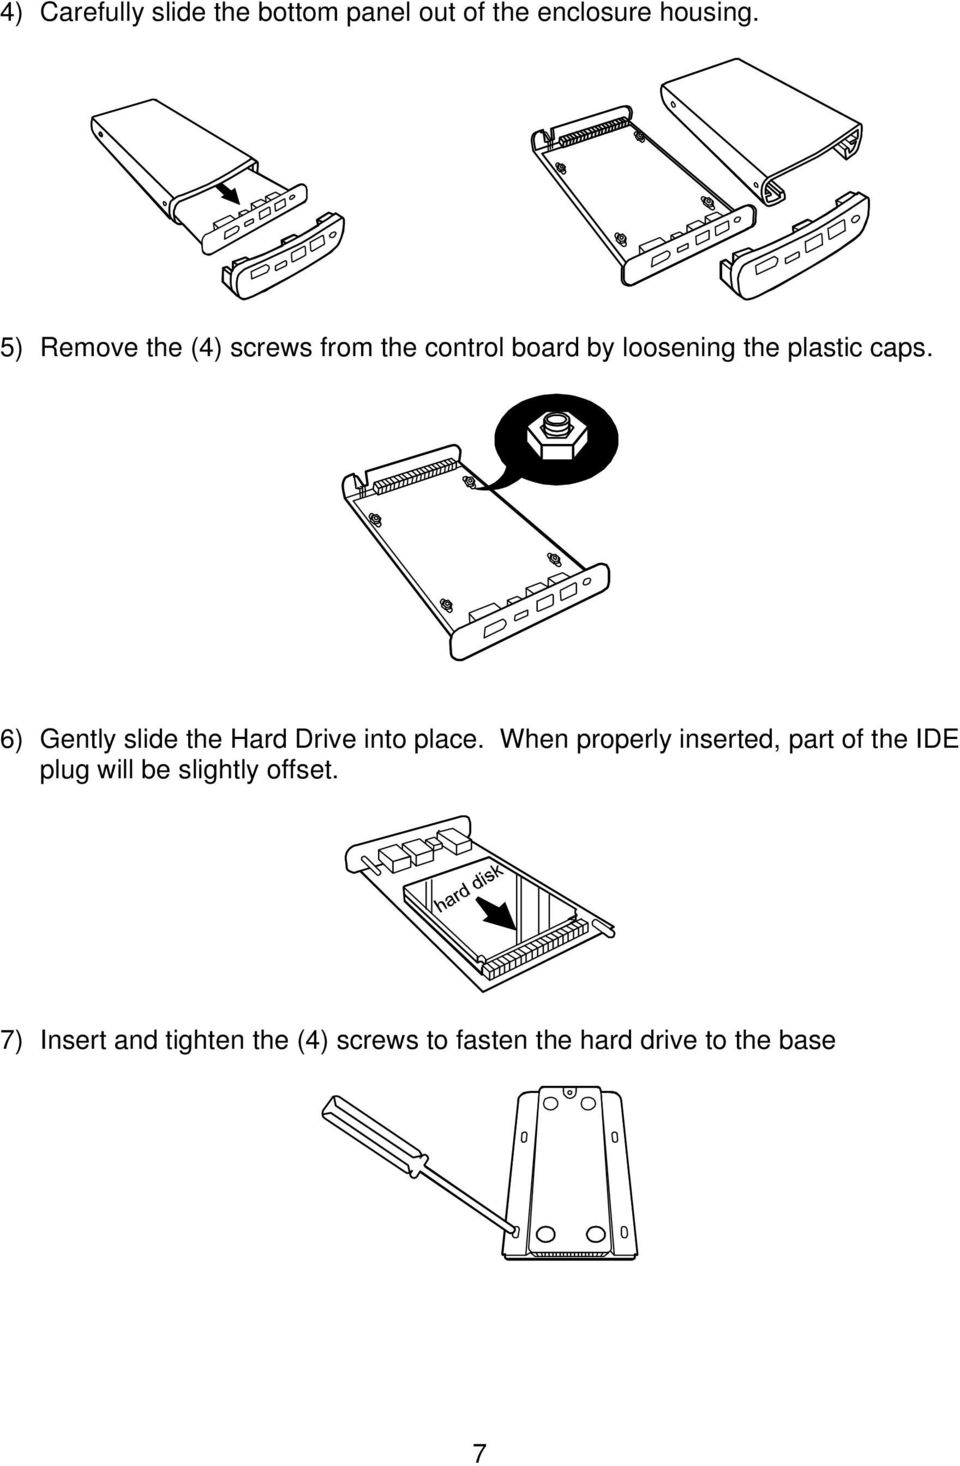 6) Gently slide the Hard Drive into place.